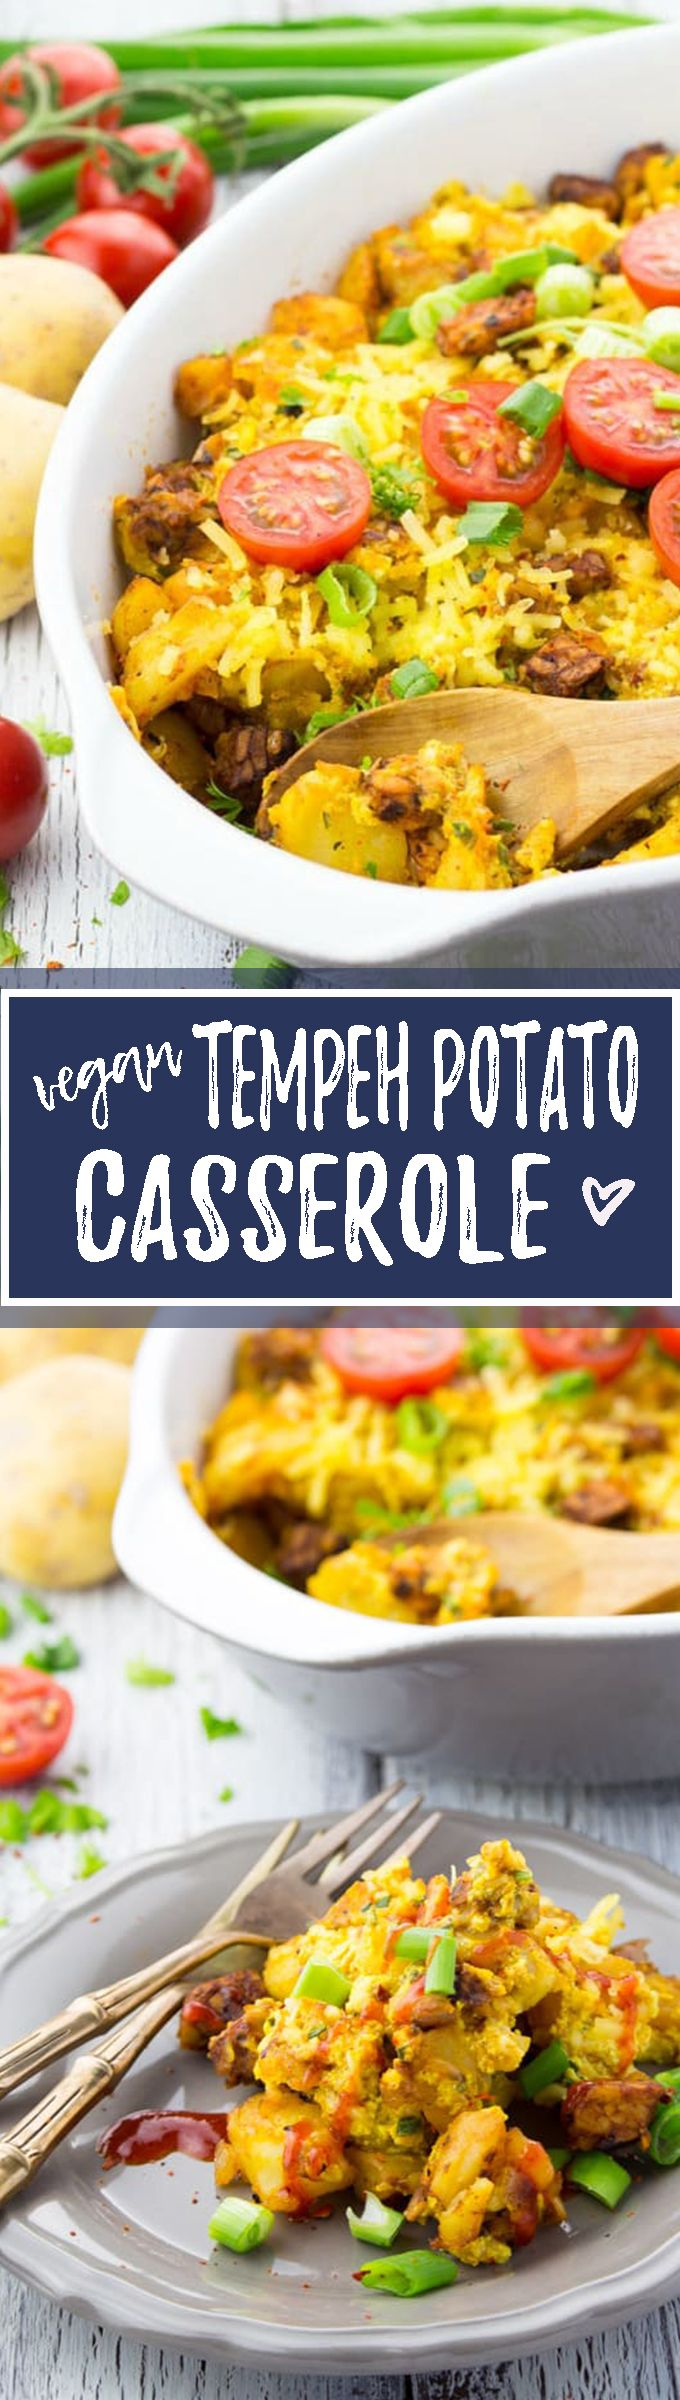 """This vegan breakfast casserole with BBQ tempeh """"bacon"""" and potatoes is perfect for a hearty breakfast or even brunch. Delicious and super easy to make!"""